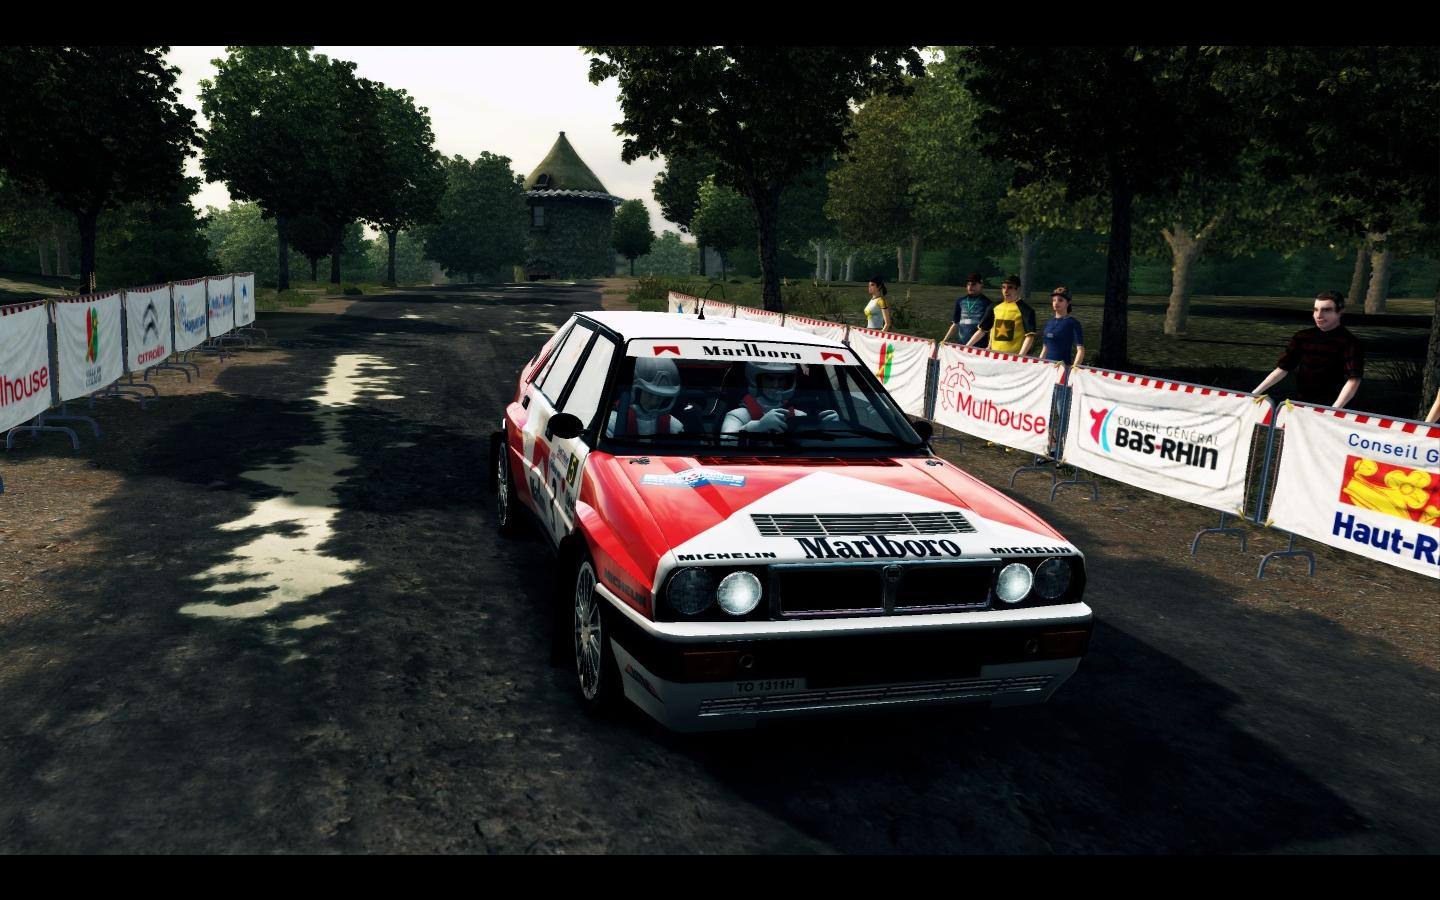 Lancia Delta HF Integrale livery/skin mod download